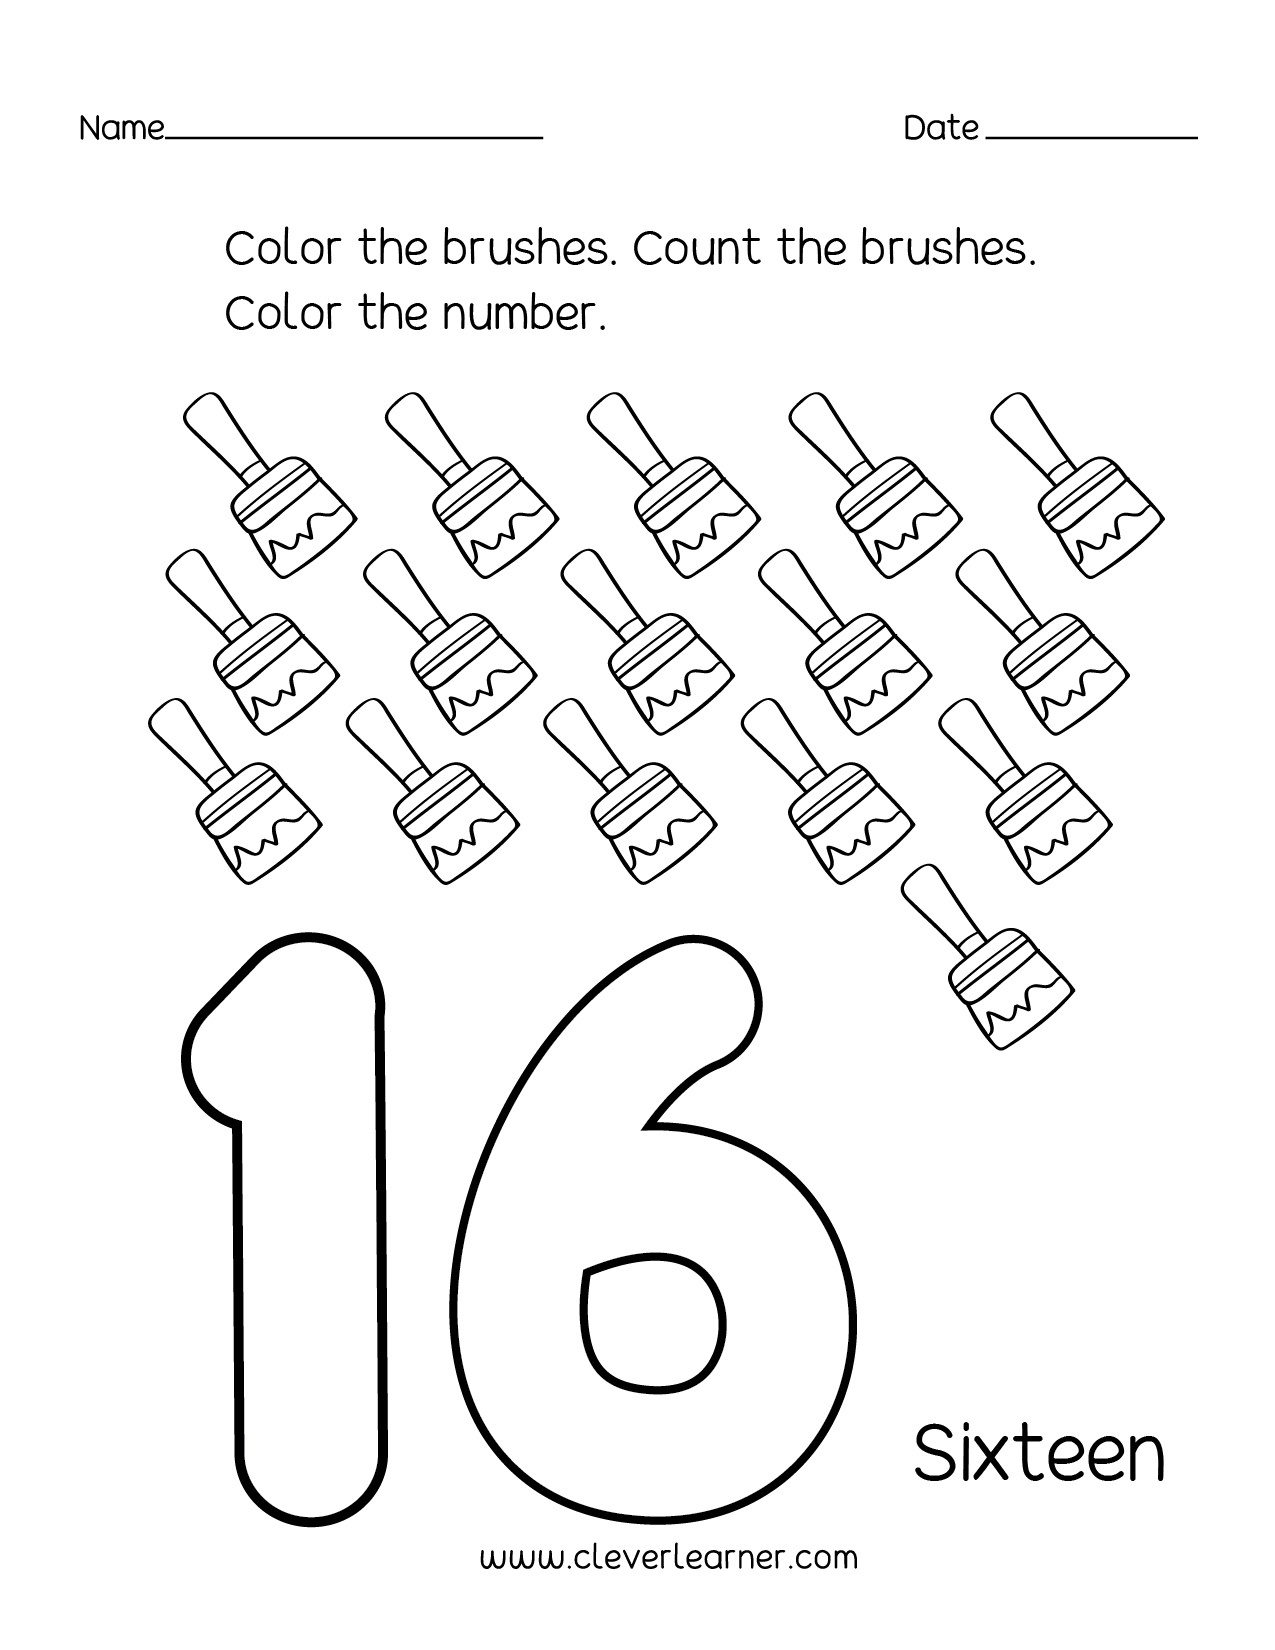 Kindergartern Number 18 Worksheet